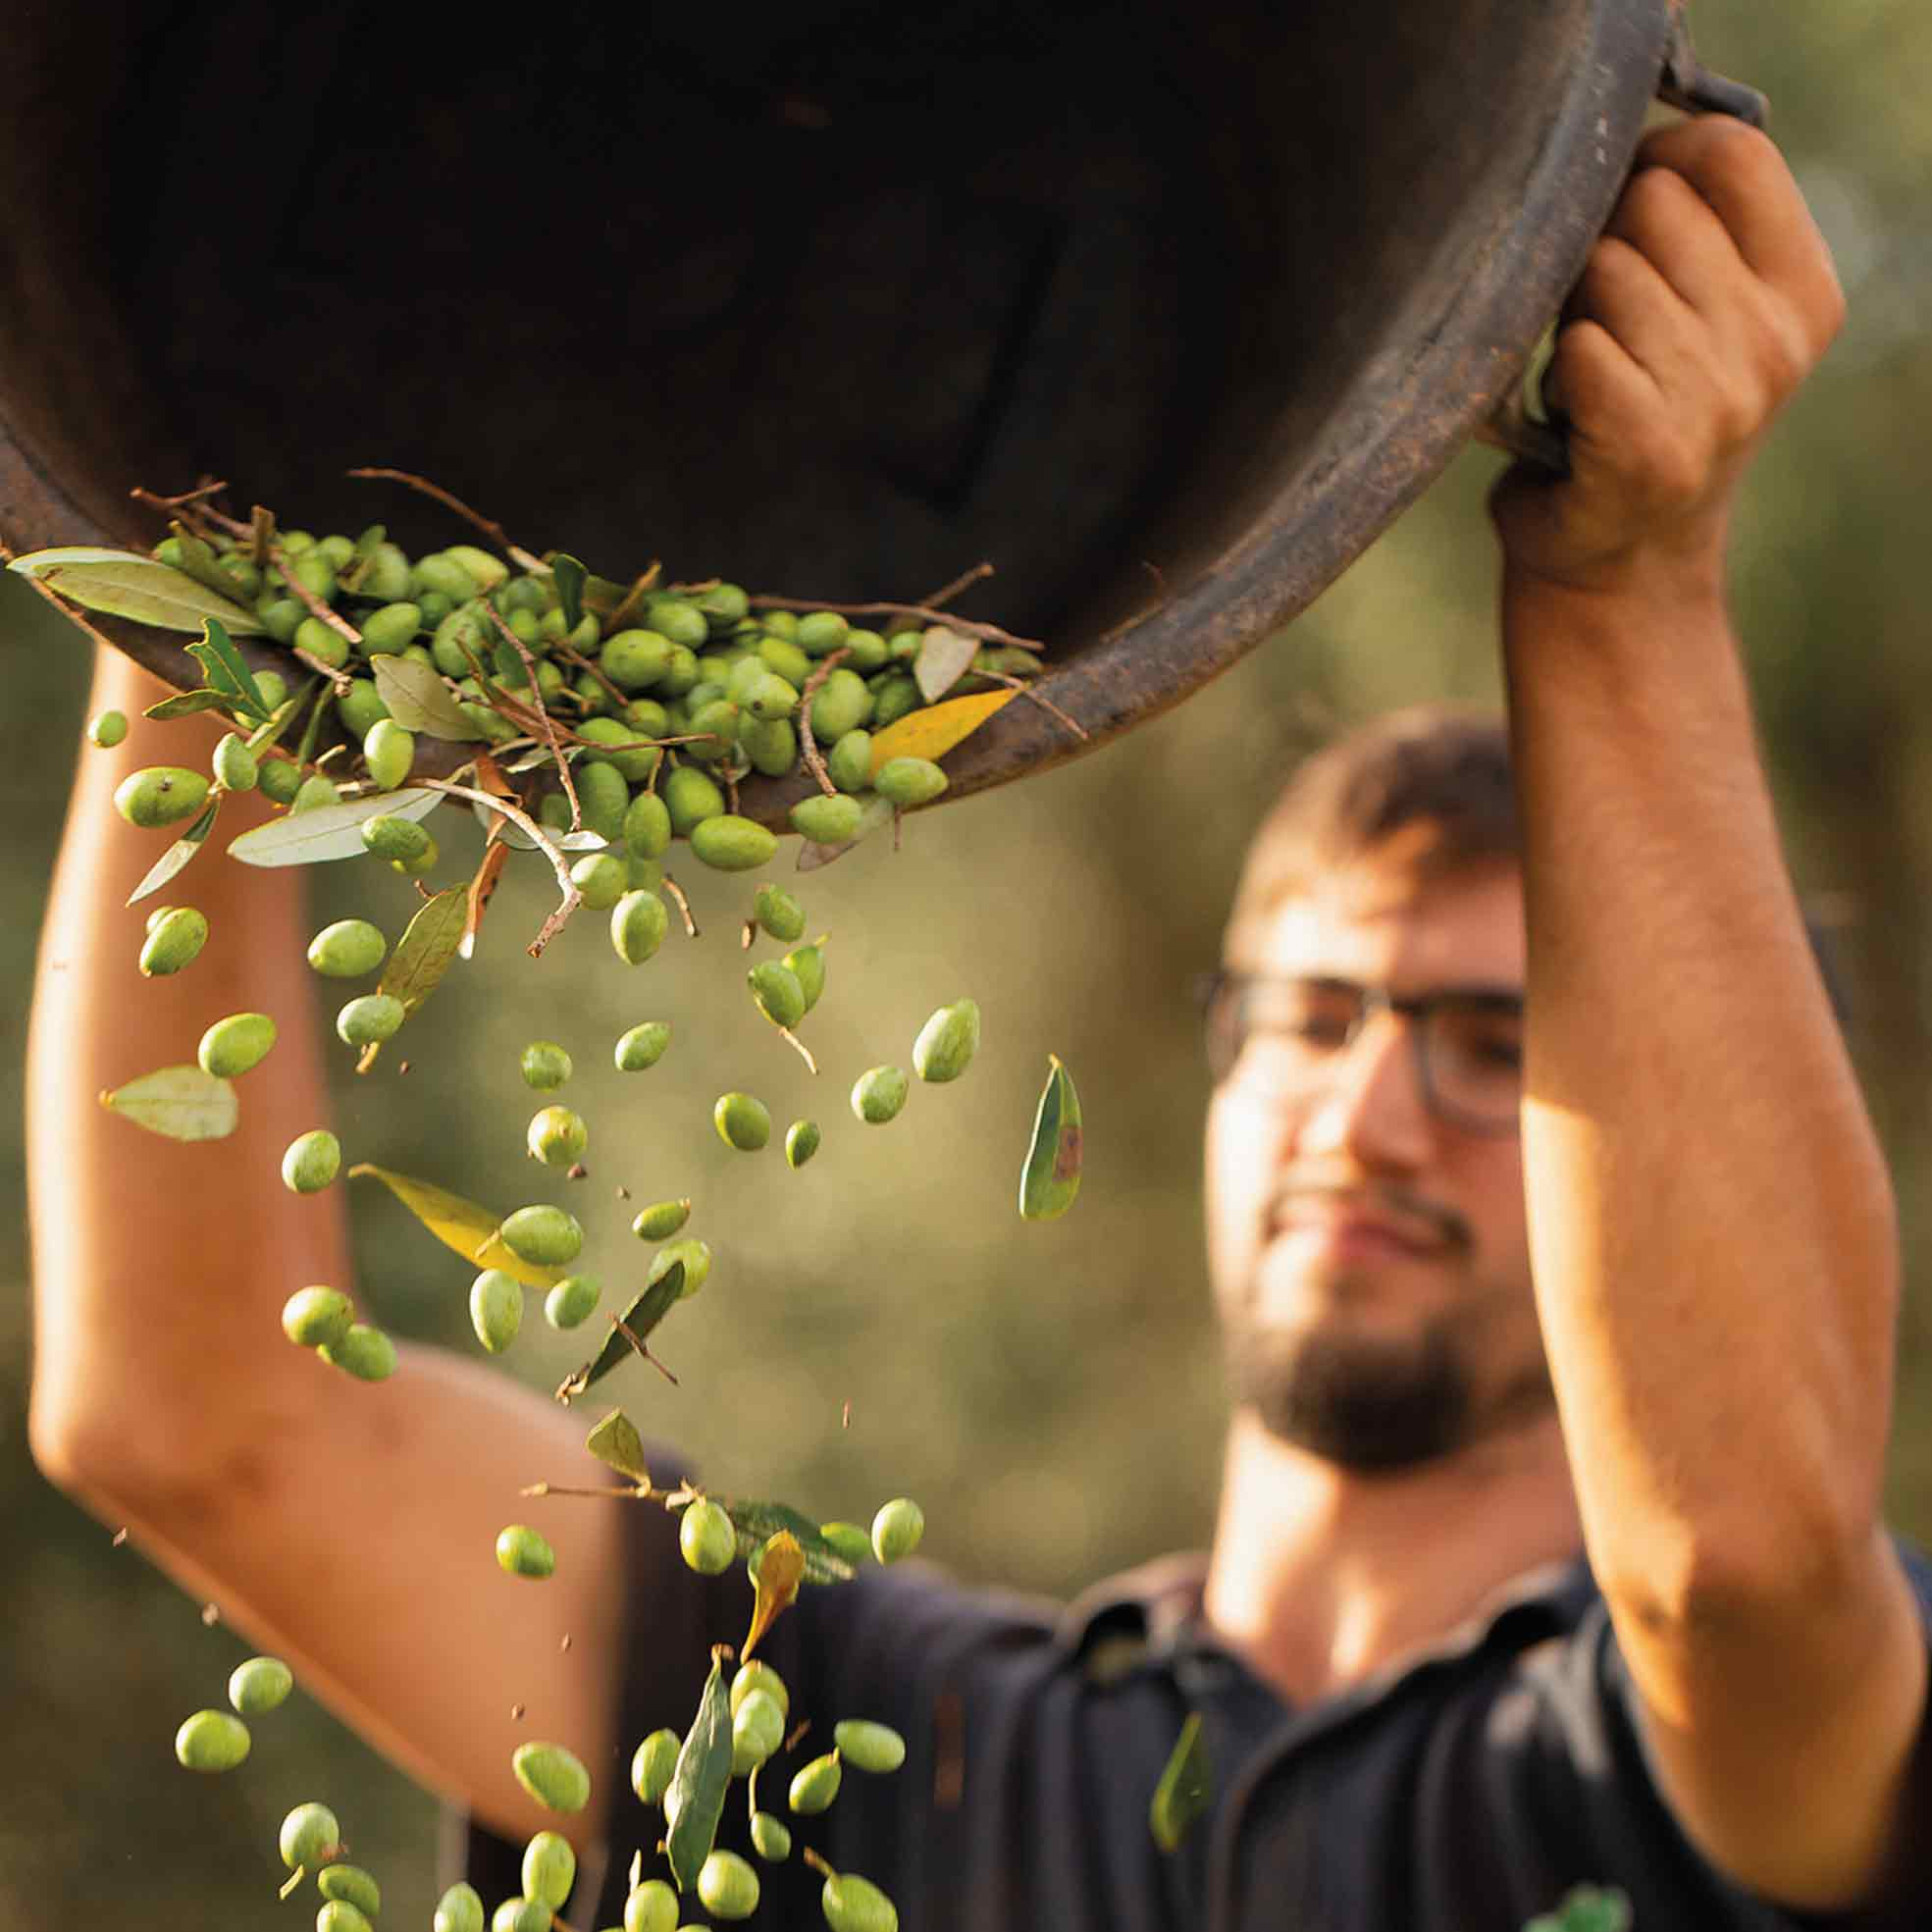 Olive harvest 2019: an overview